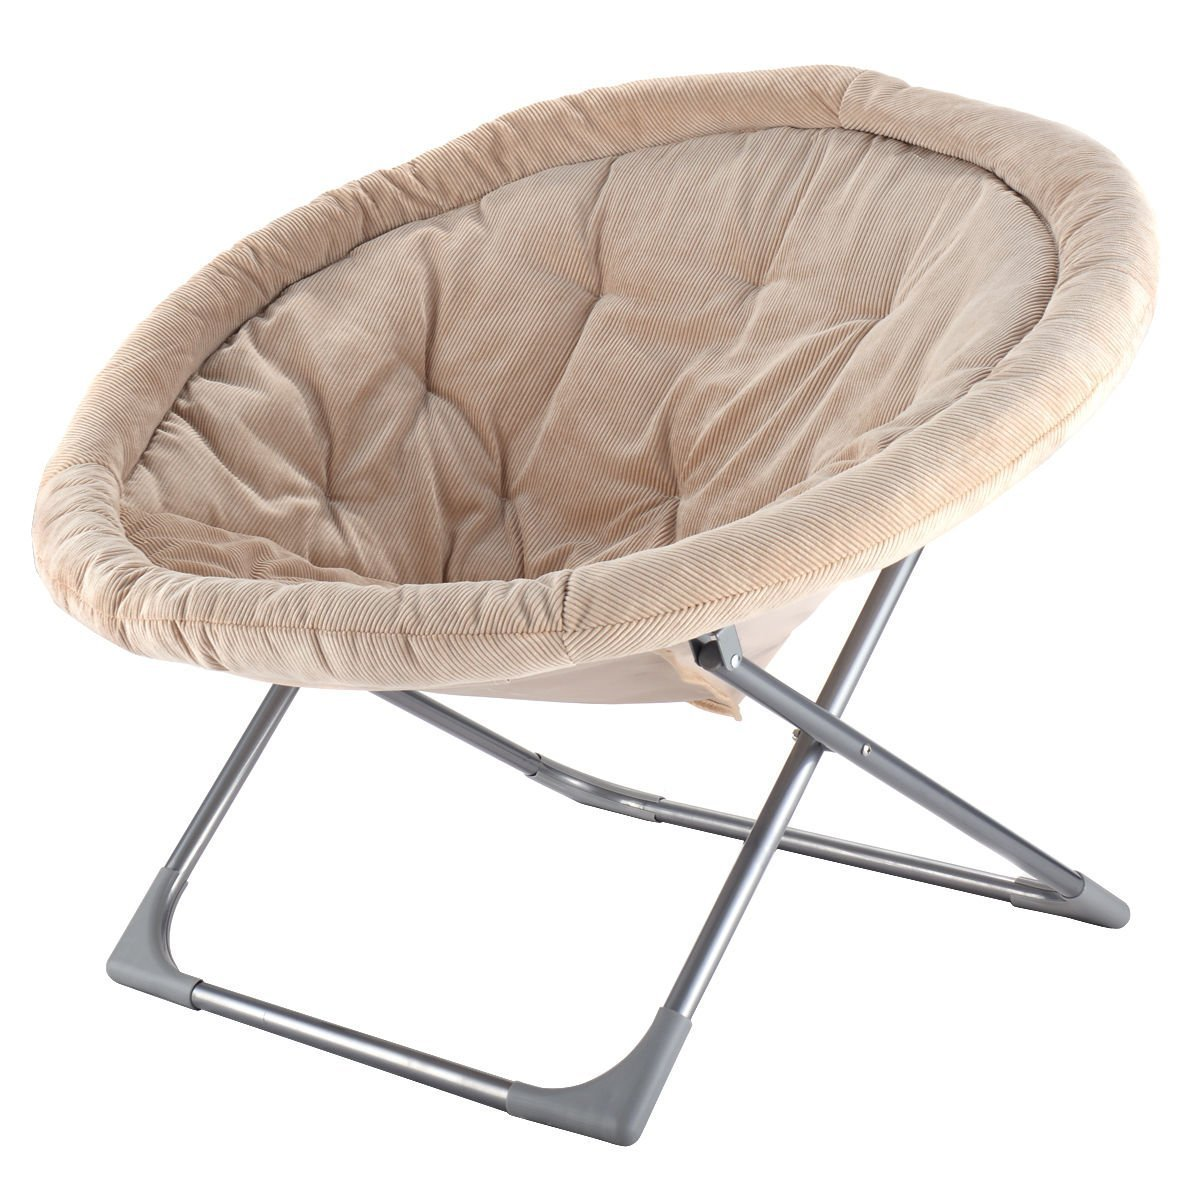 Oversized Folding Saucer Moon Chair Corduroy Round Seat Living Room Bei